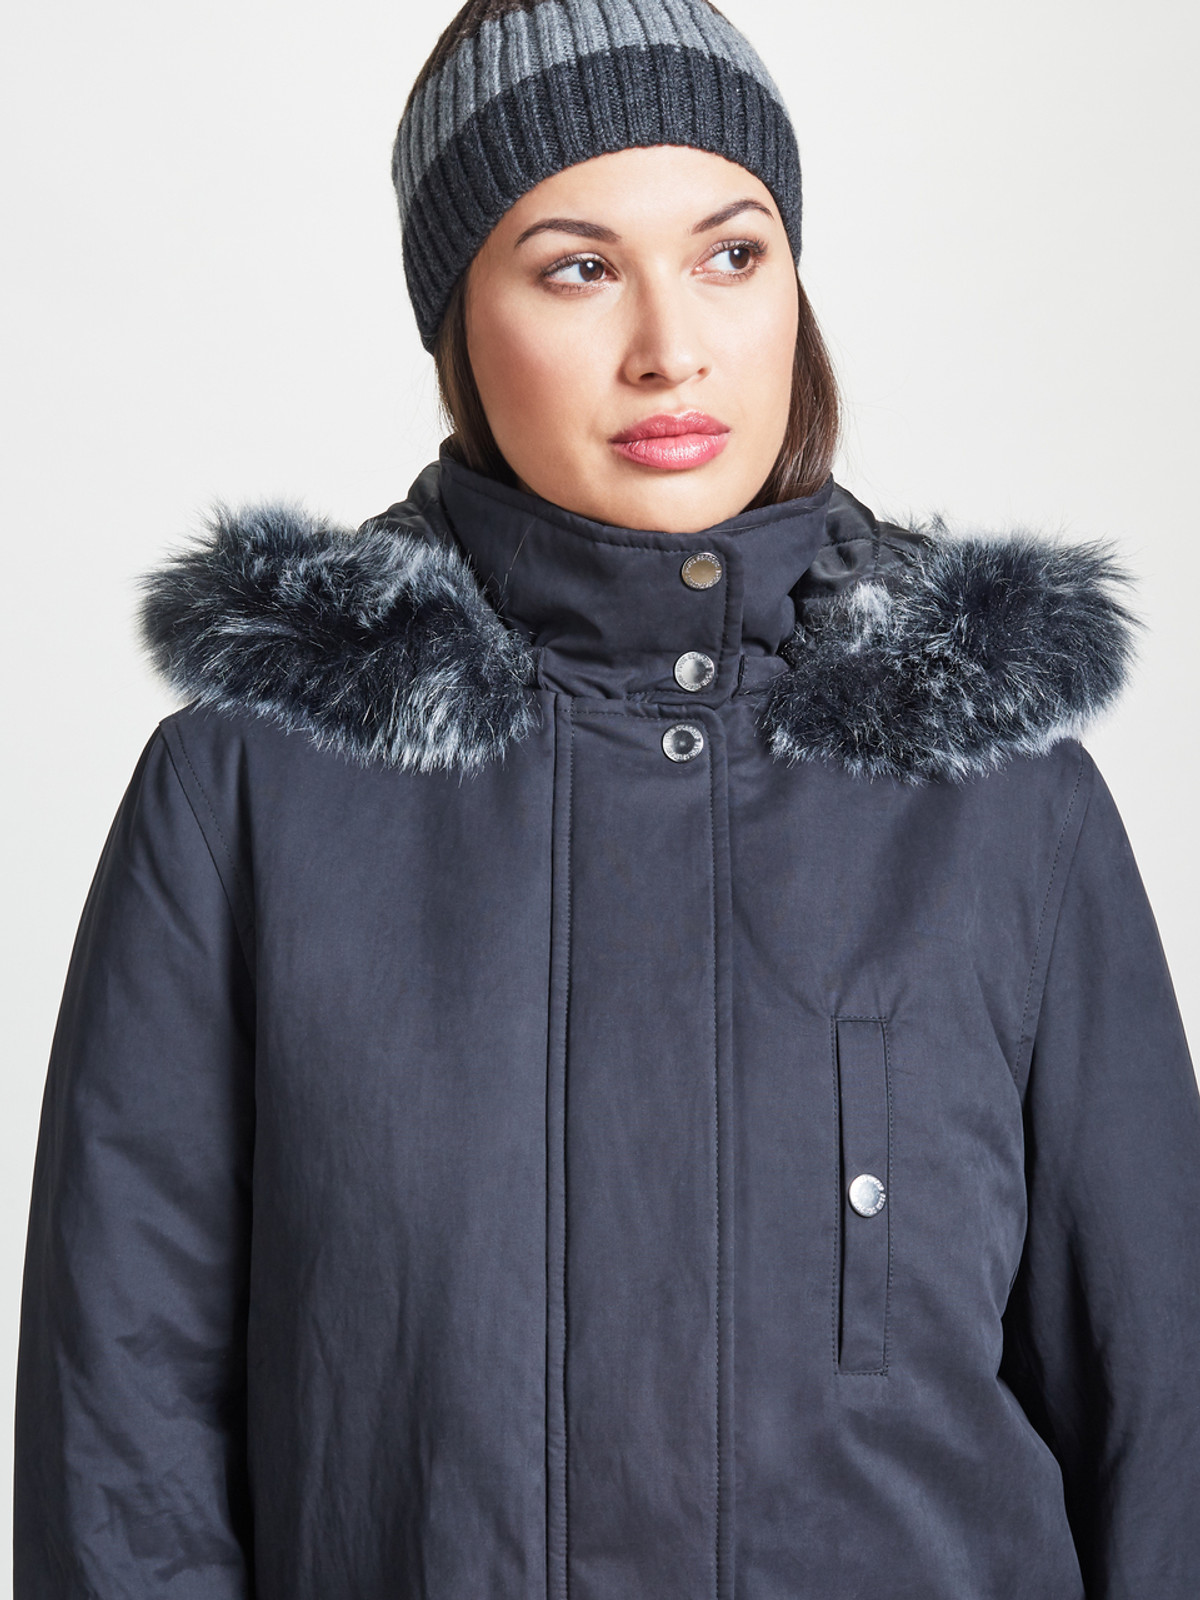 Caban with Fur Trim, Black